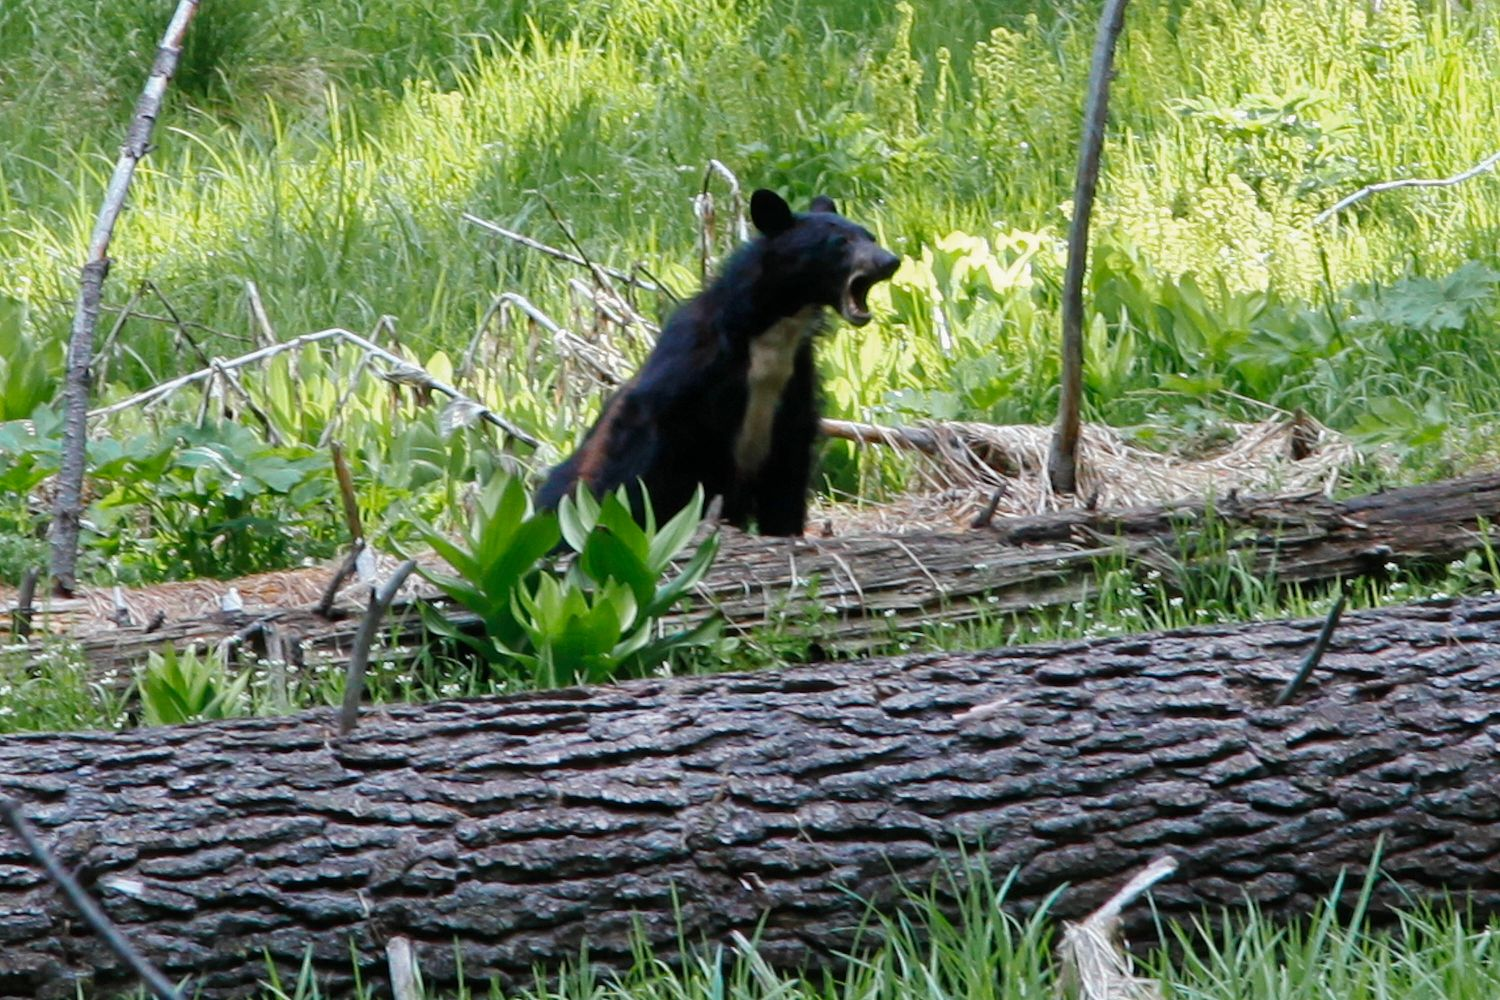 Black Bear at Sequoia NP playing amongst the trees